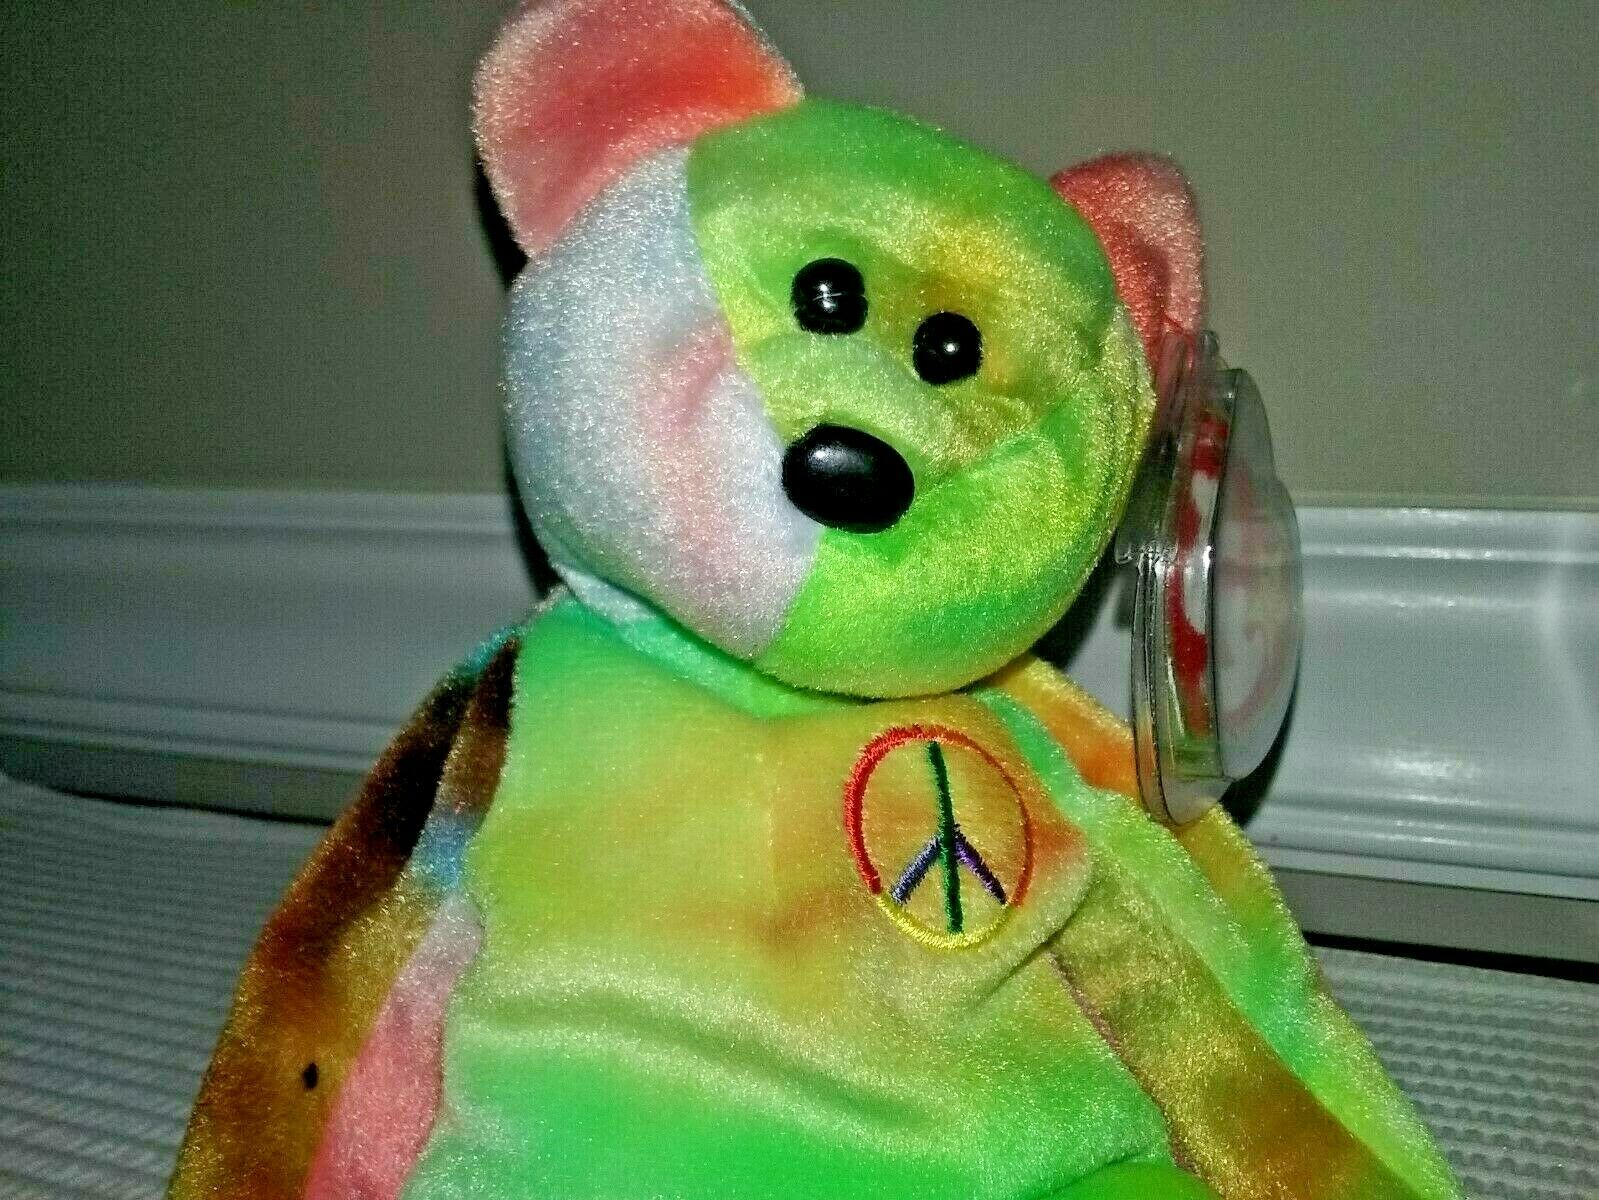 TY BEANIE BABY 1996      PEACE    TY-DYED  BEAR  (MINT WITH MINT TAGS) 181efb